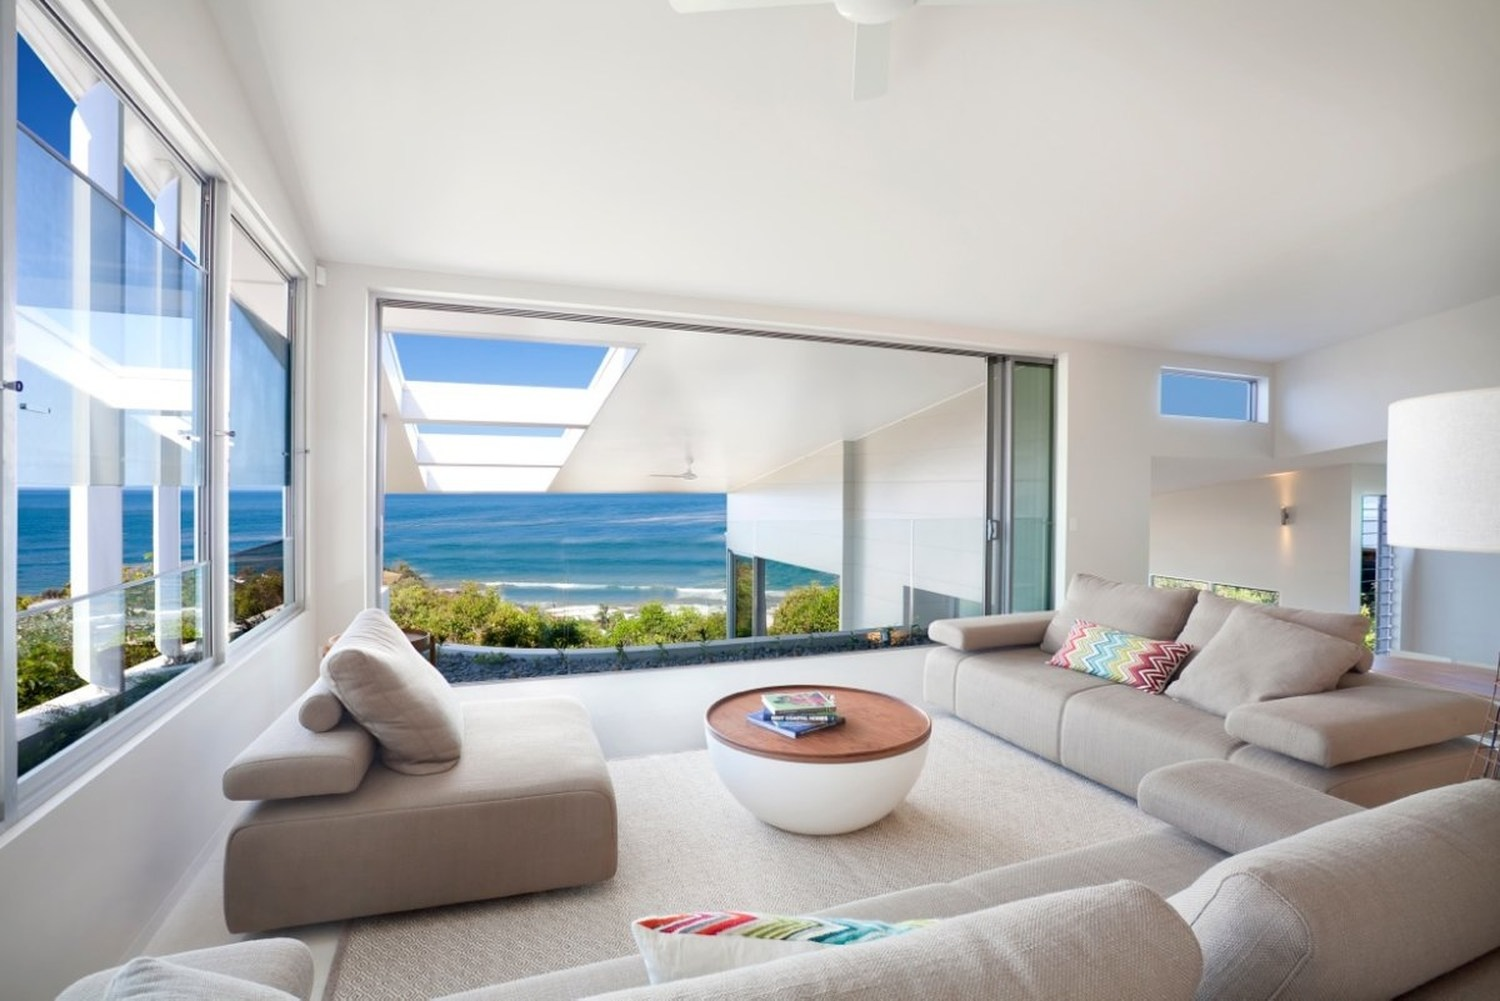 Aboda Design Group have designed the Coolum Bays Beach House in ...